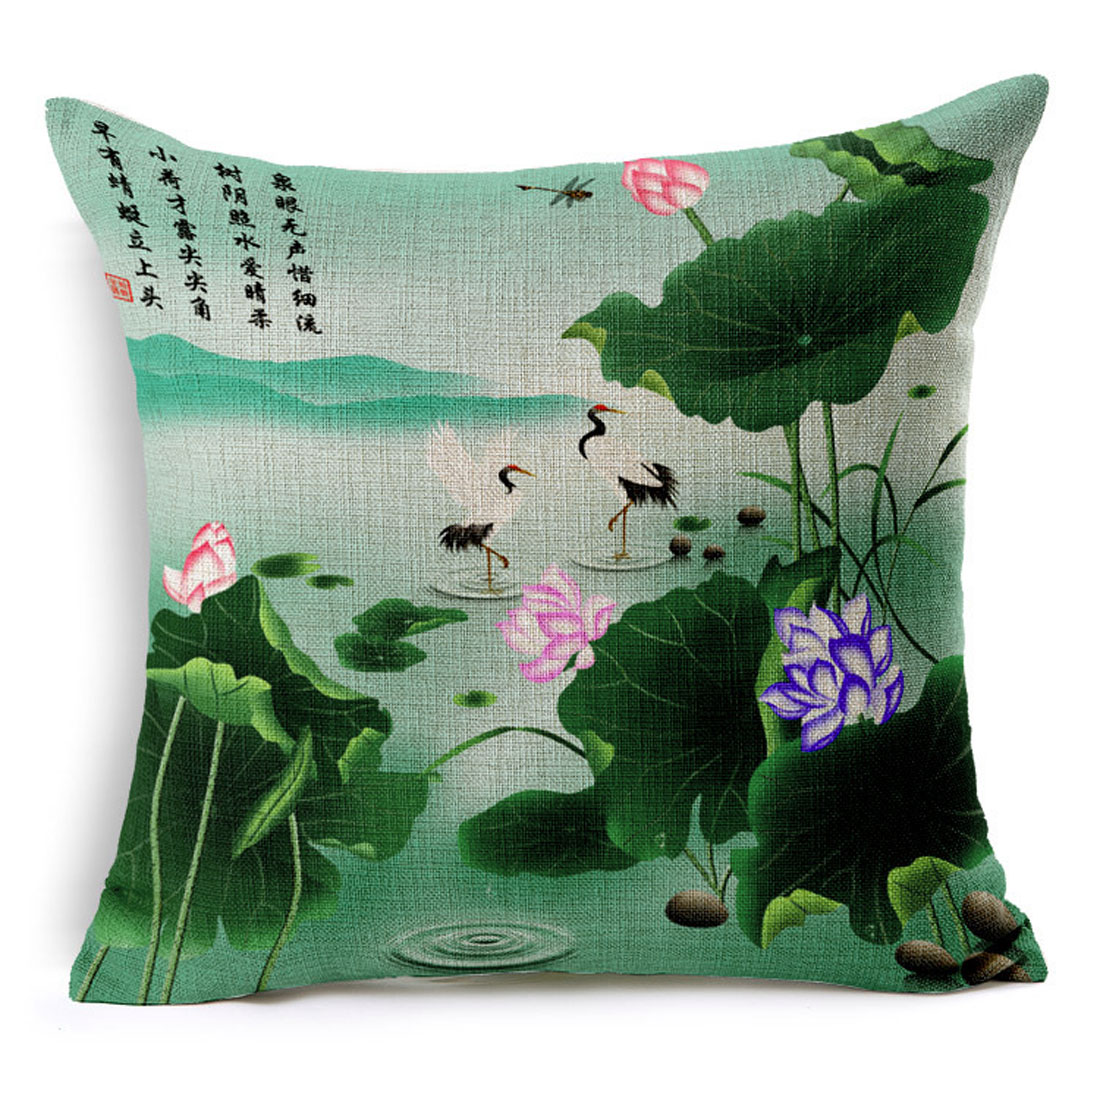 Sofa Cotton Linen Lotus Crpowerfule Pattern Waist Throw Cushion Cover Pillow Case